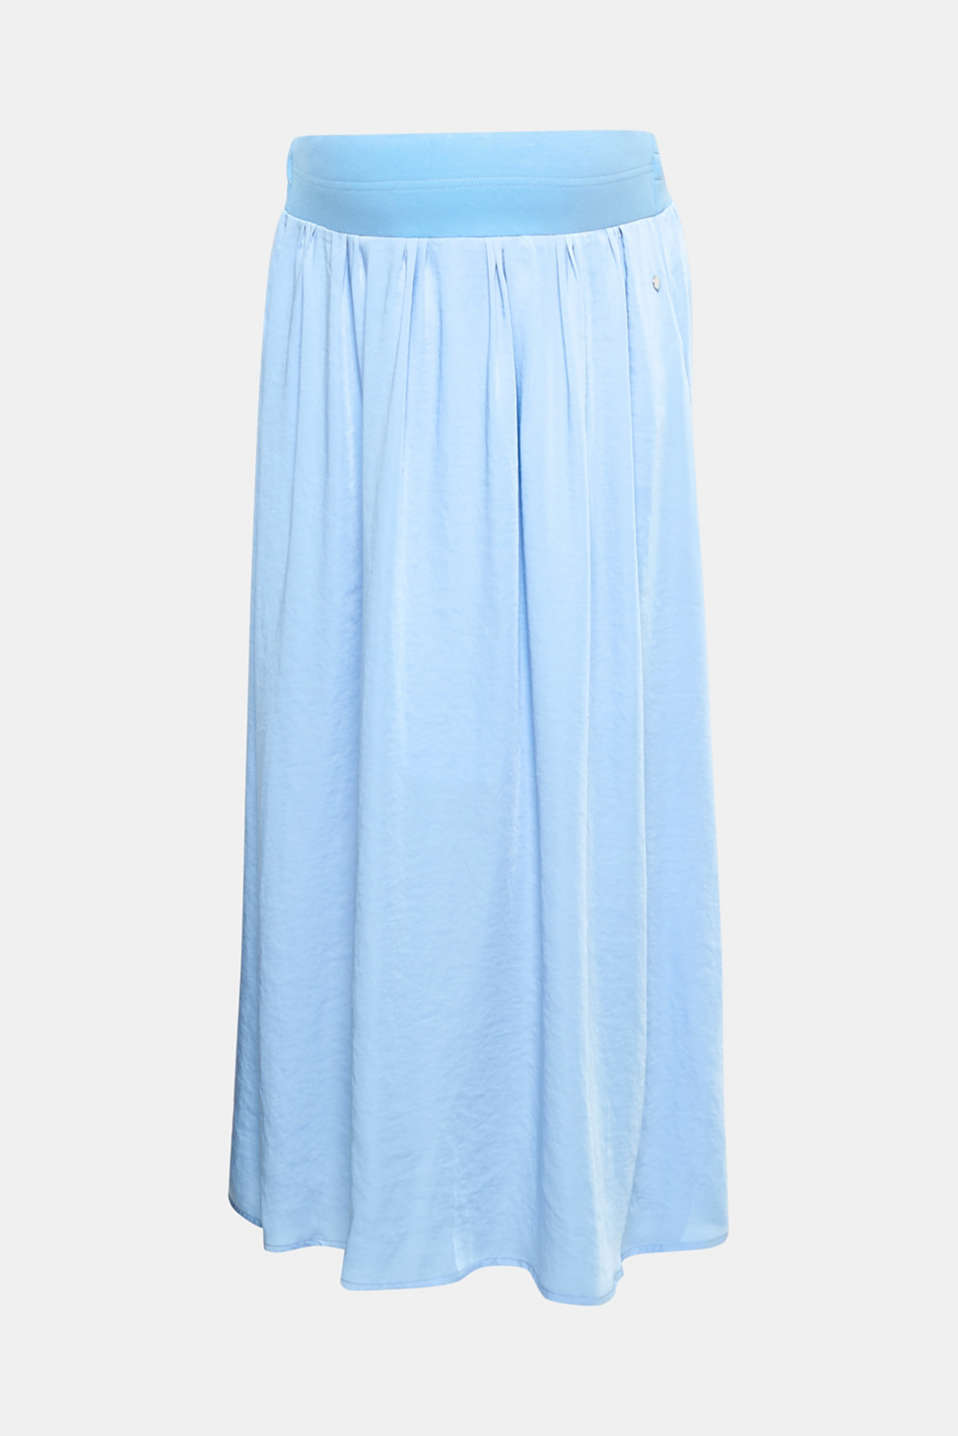 With its stylish maxi length and functional under-bump waistband, this maxi skirt is made for mothers-to-be.